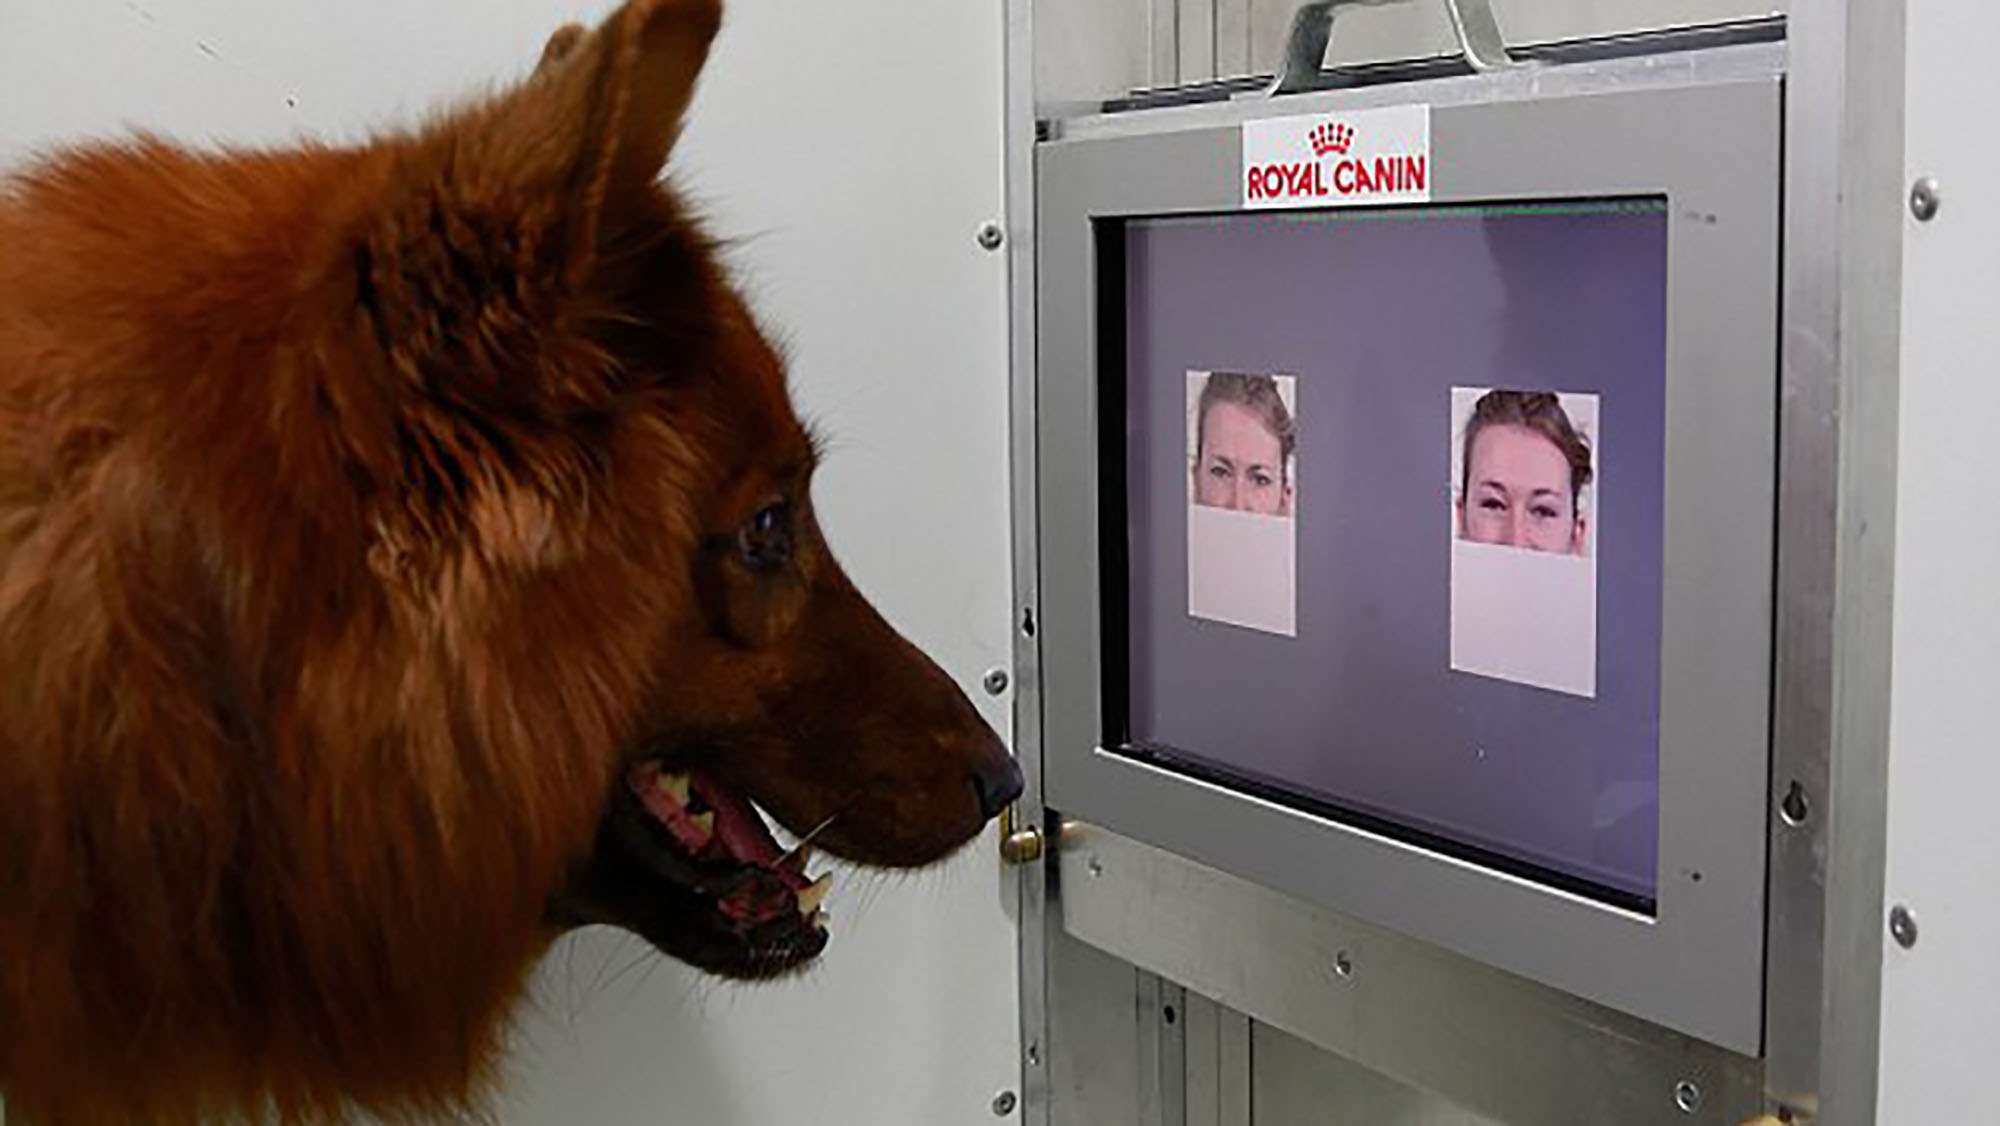 Dogs can tell how you're feeling, according to new study